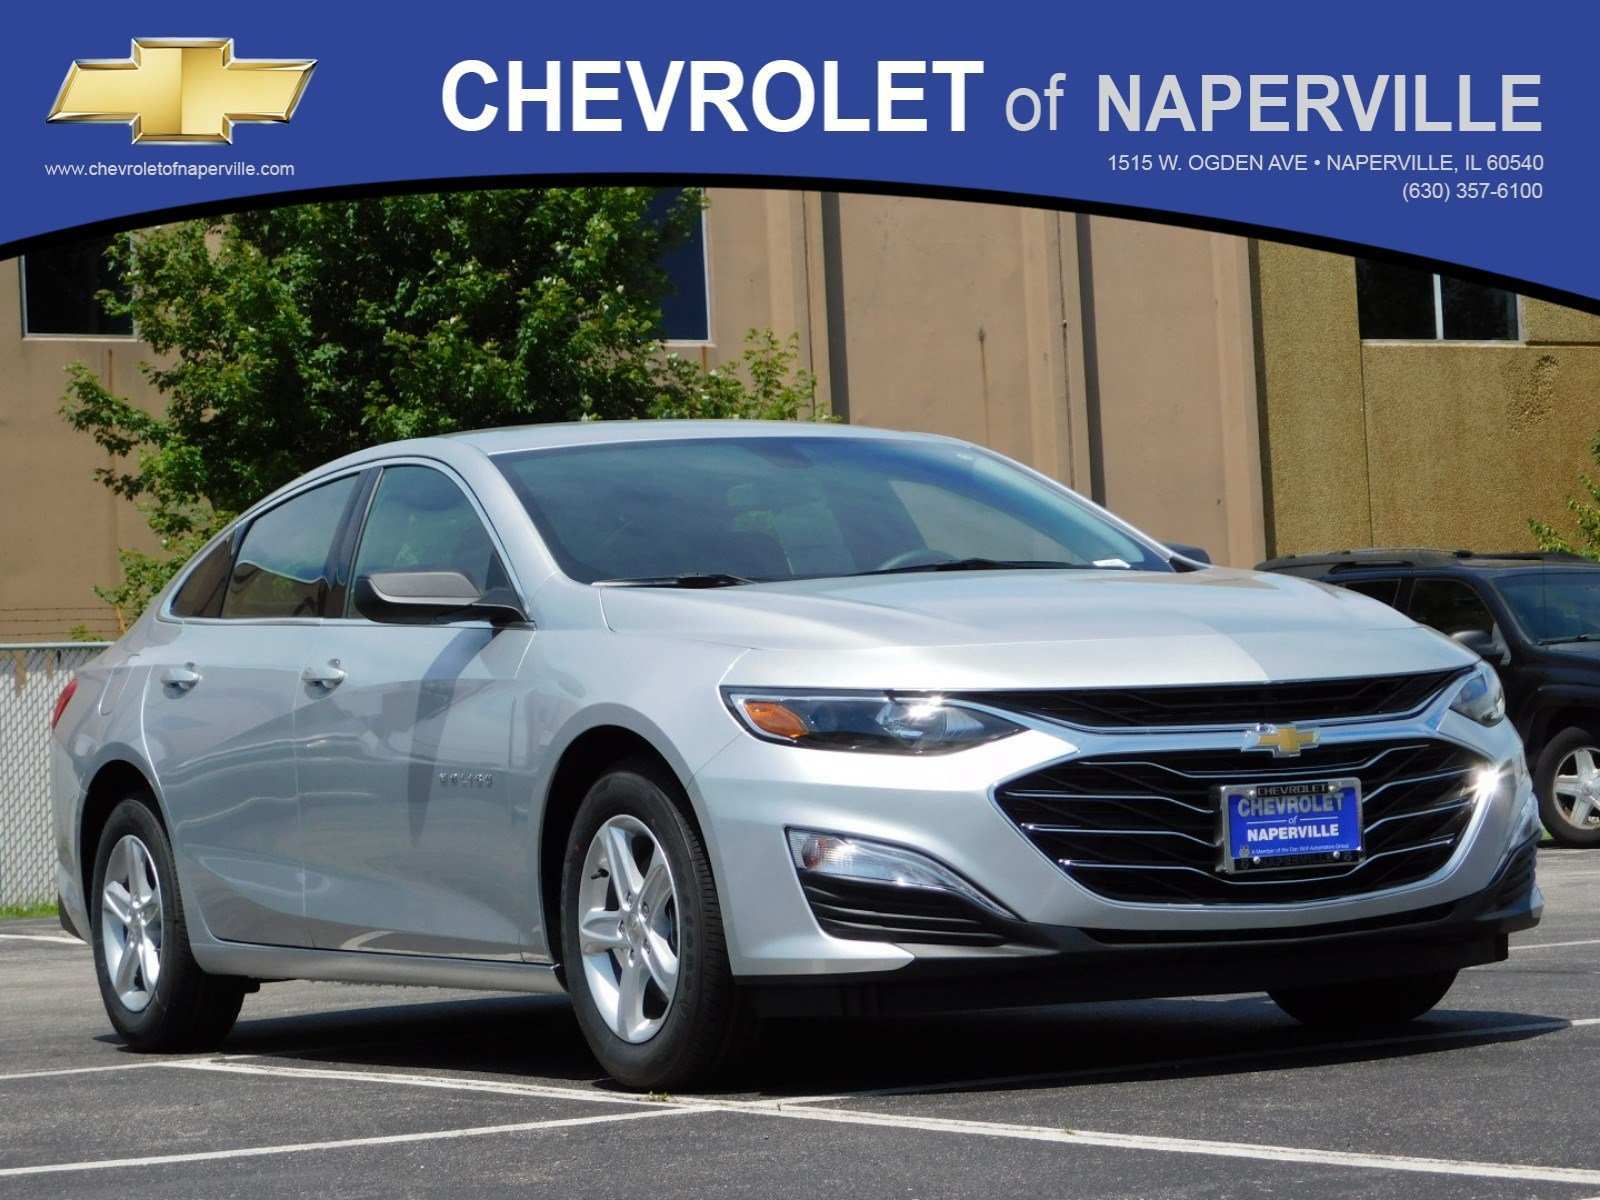 69 Concept of Chevrolet Malibu 2020 Price and Review by Chevrolet Malibu 2020